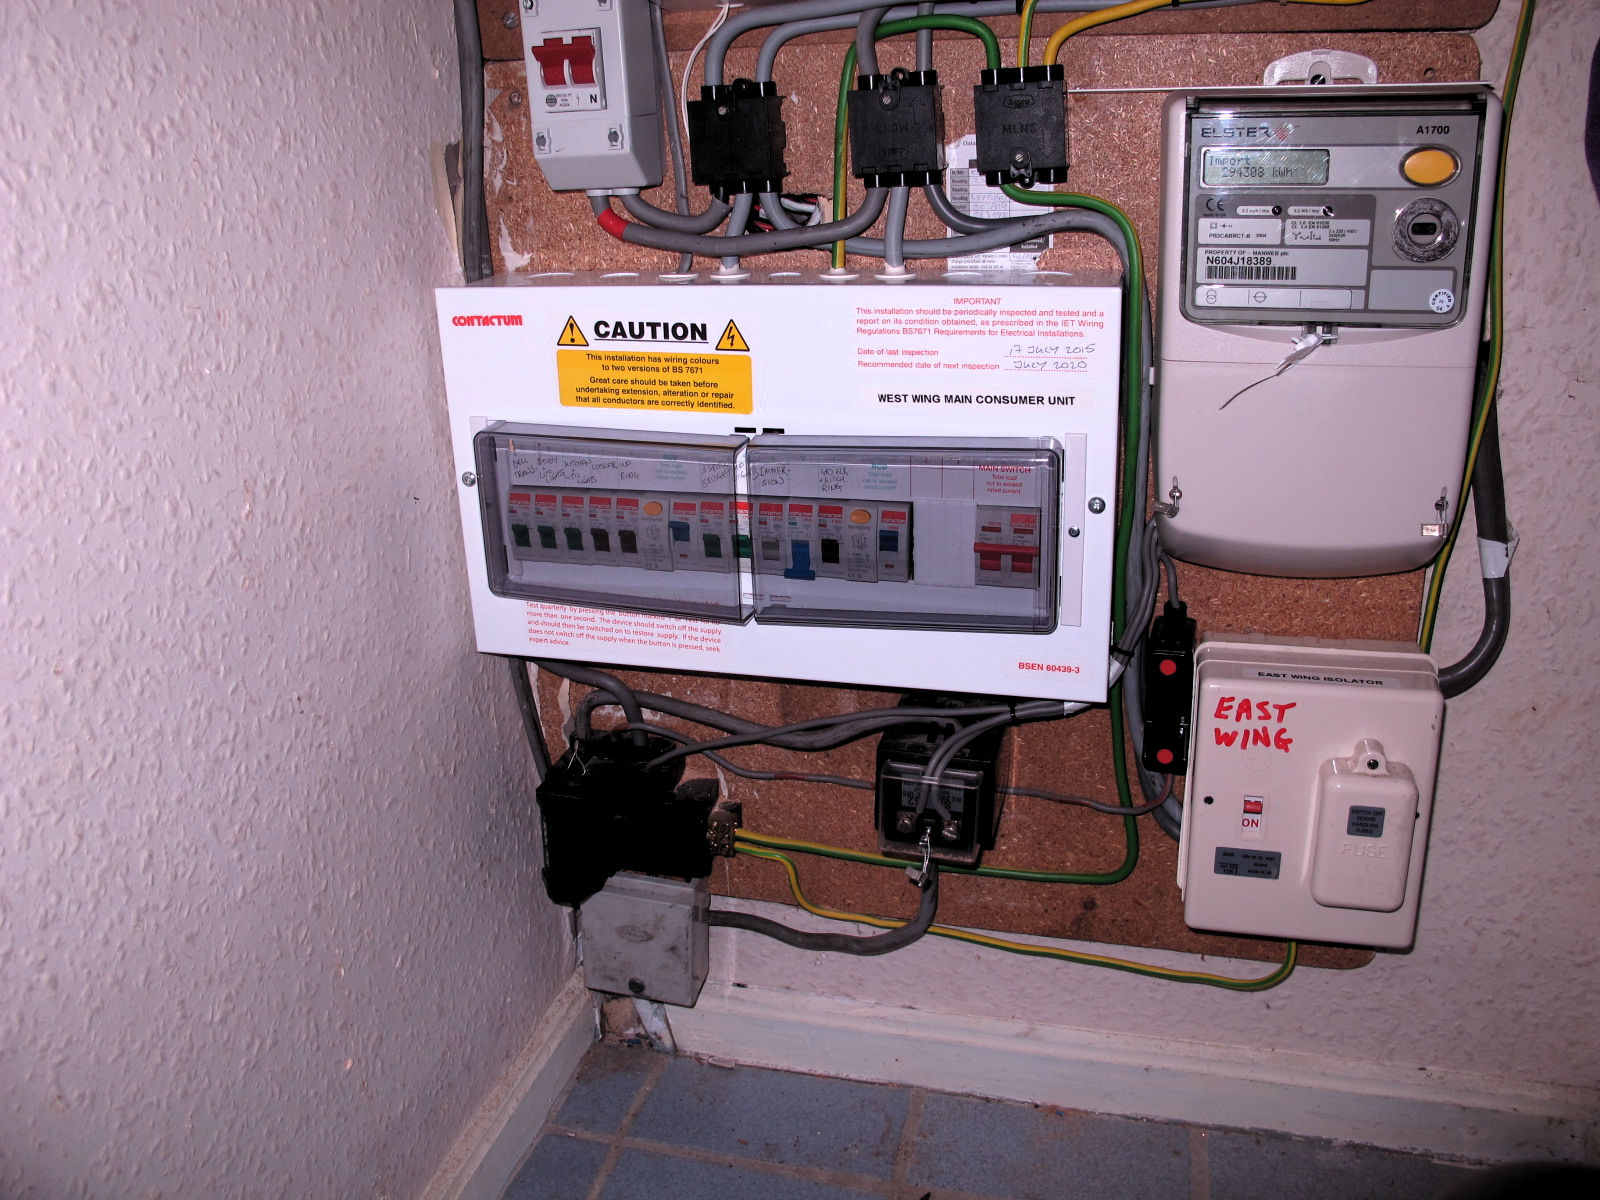 Fuse Box Regulations Uk Car Wiring Diagrams Explained Electric Panel Example Electrical Diagram U2022 Rh Huntervalleyhotels Co Board Power Distribution